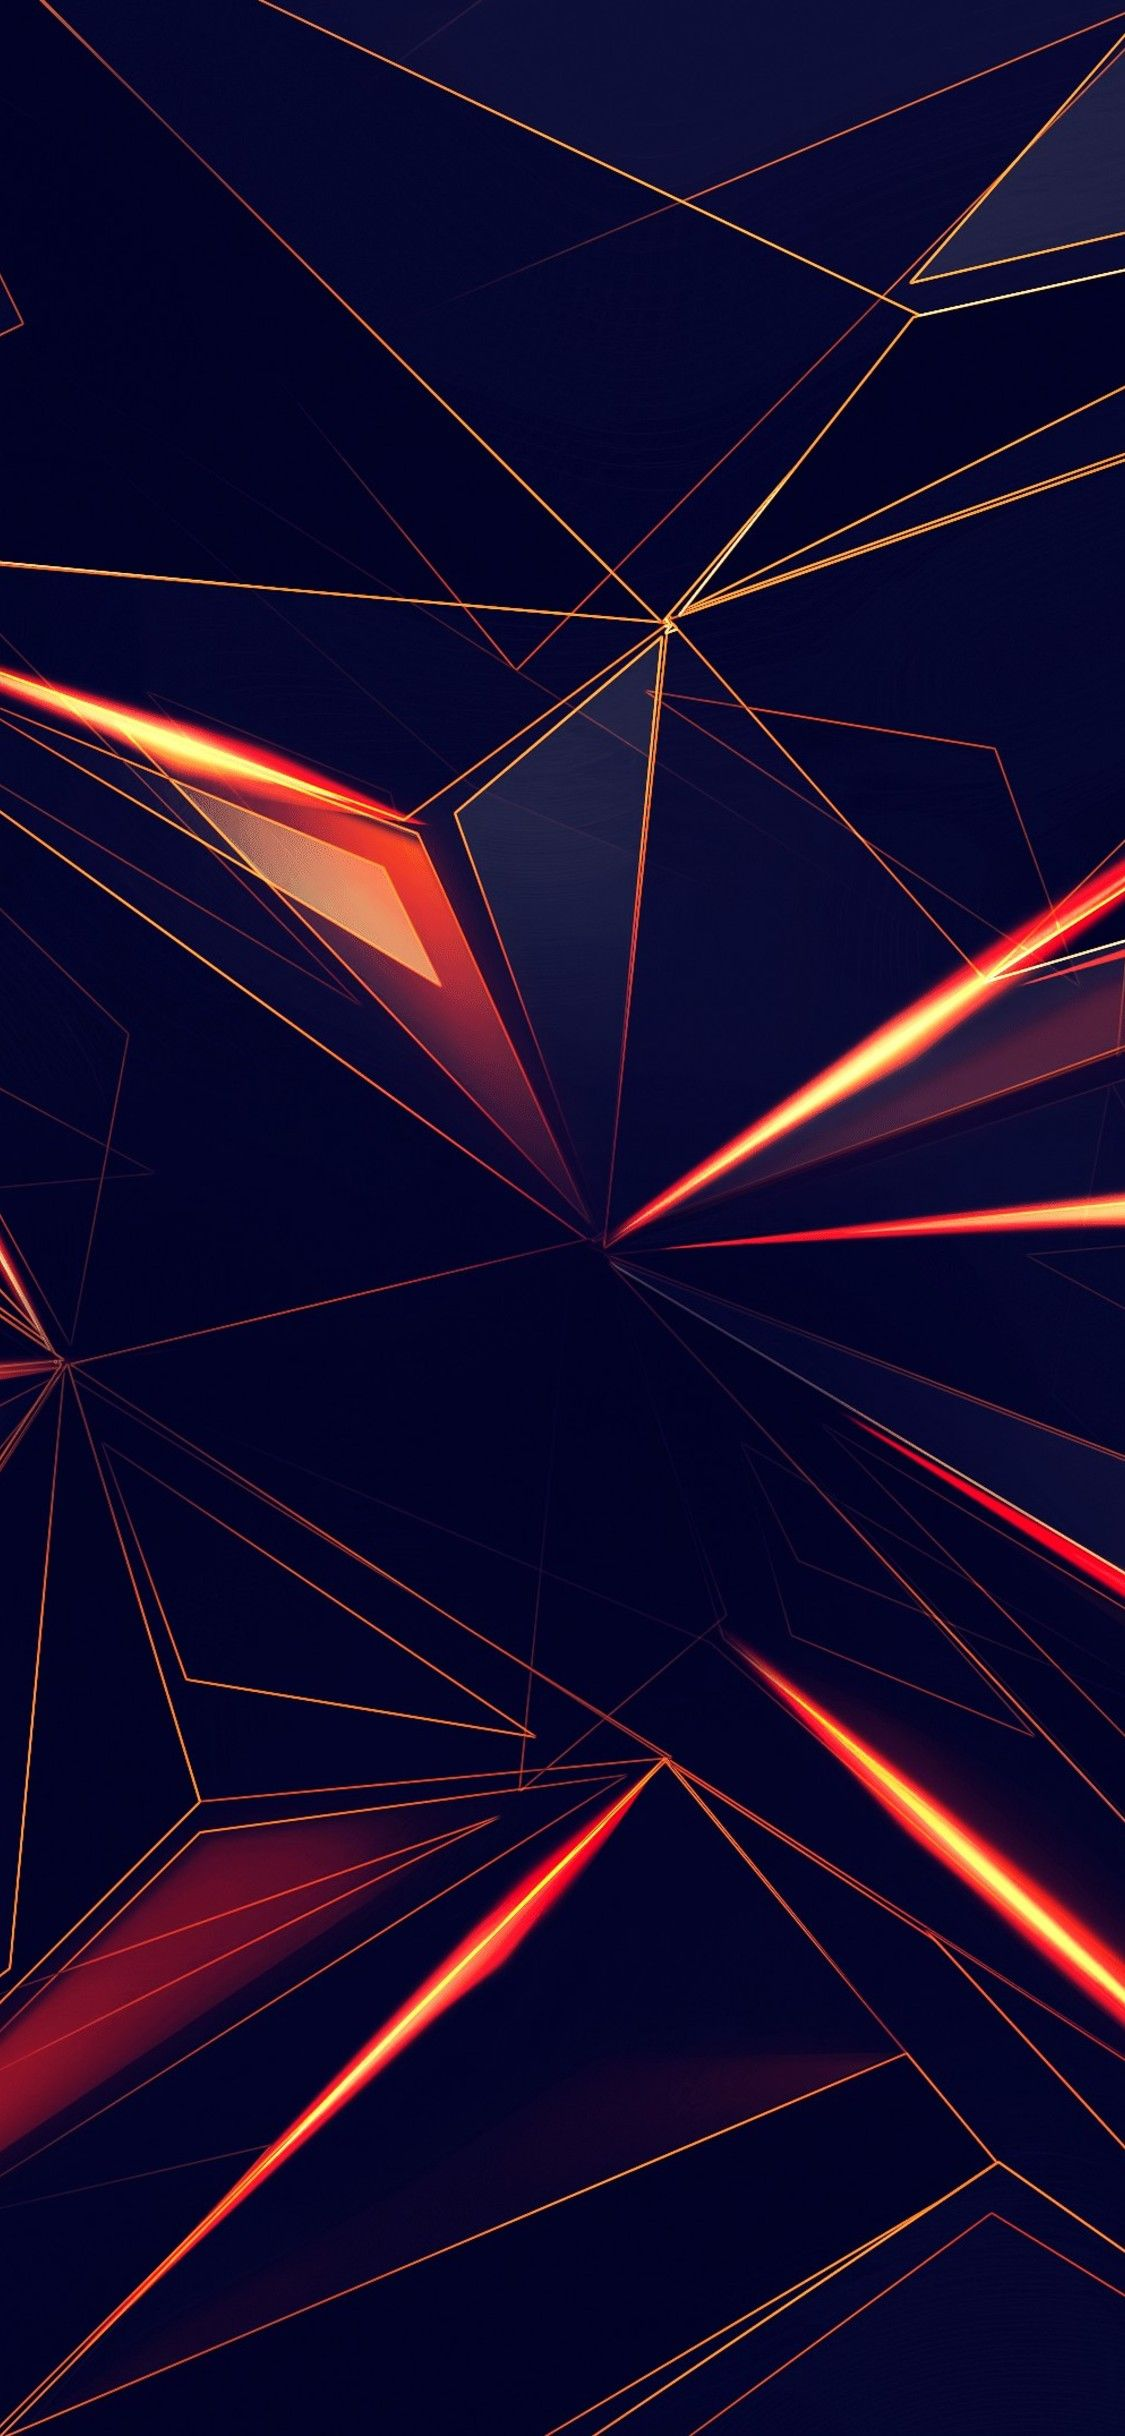 3d Shapes Abstract Lines 4k In 1125x2436 Resolution Fondos De